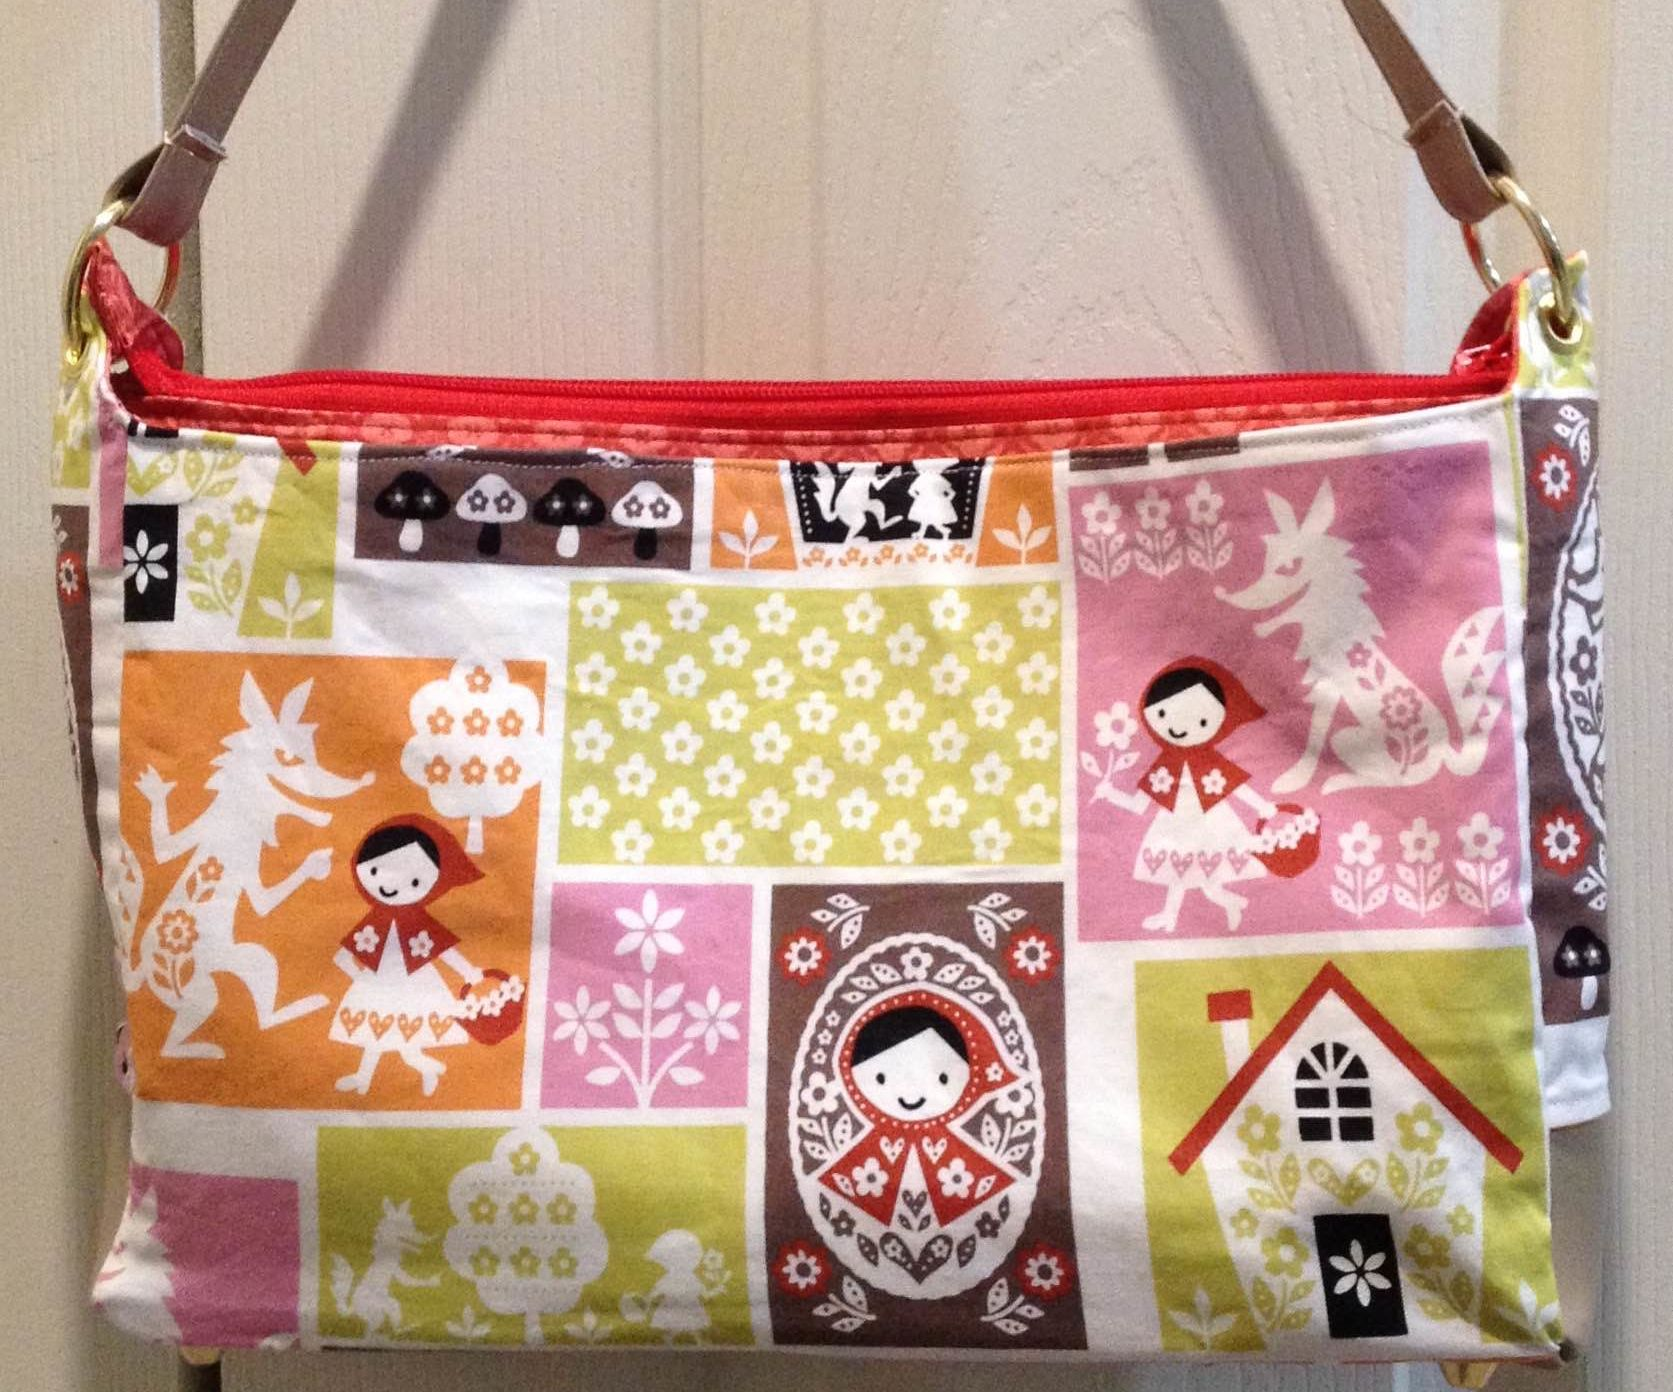 Sew a Three Pocket Purse and Four Accessory Bags